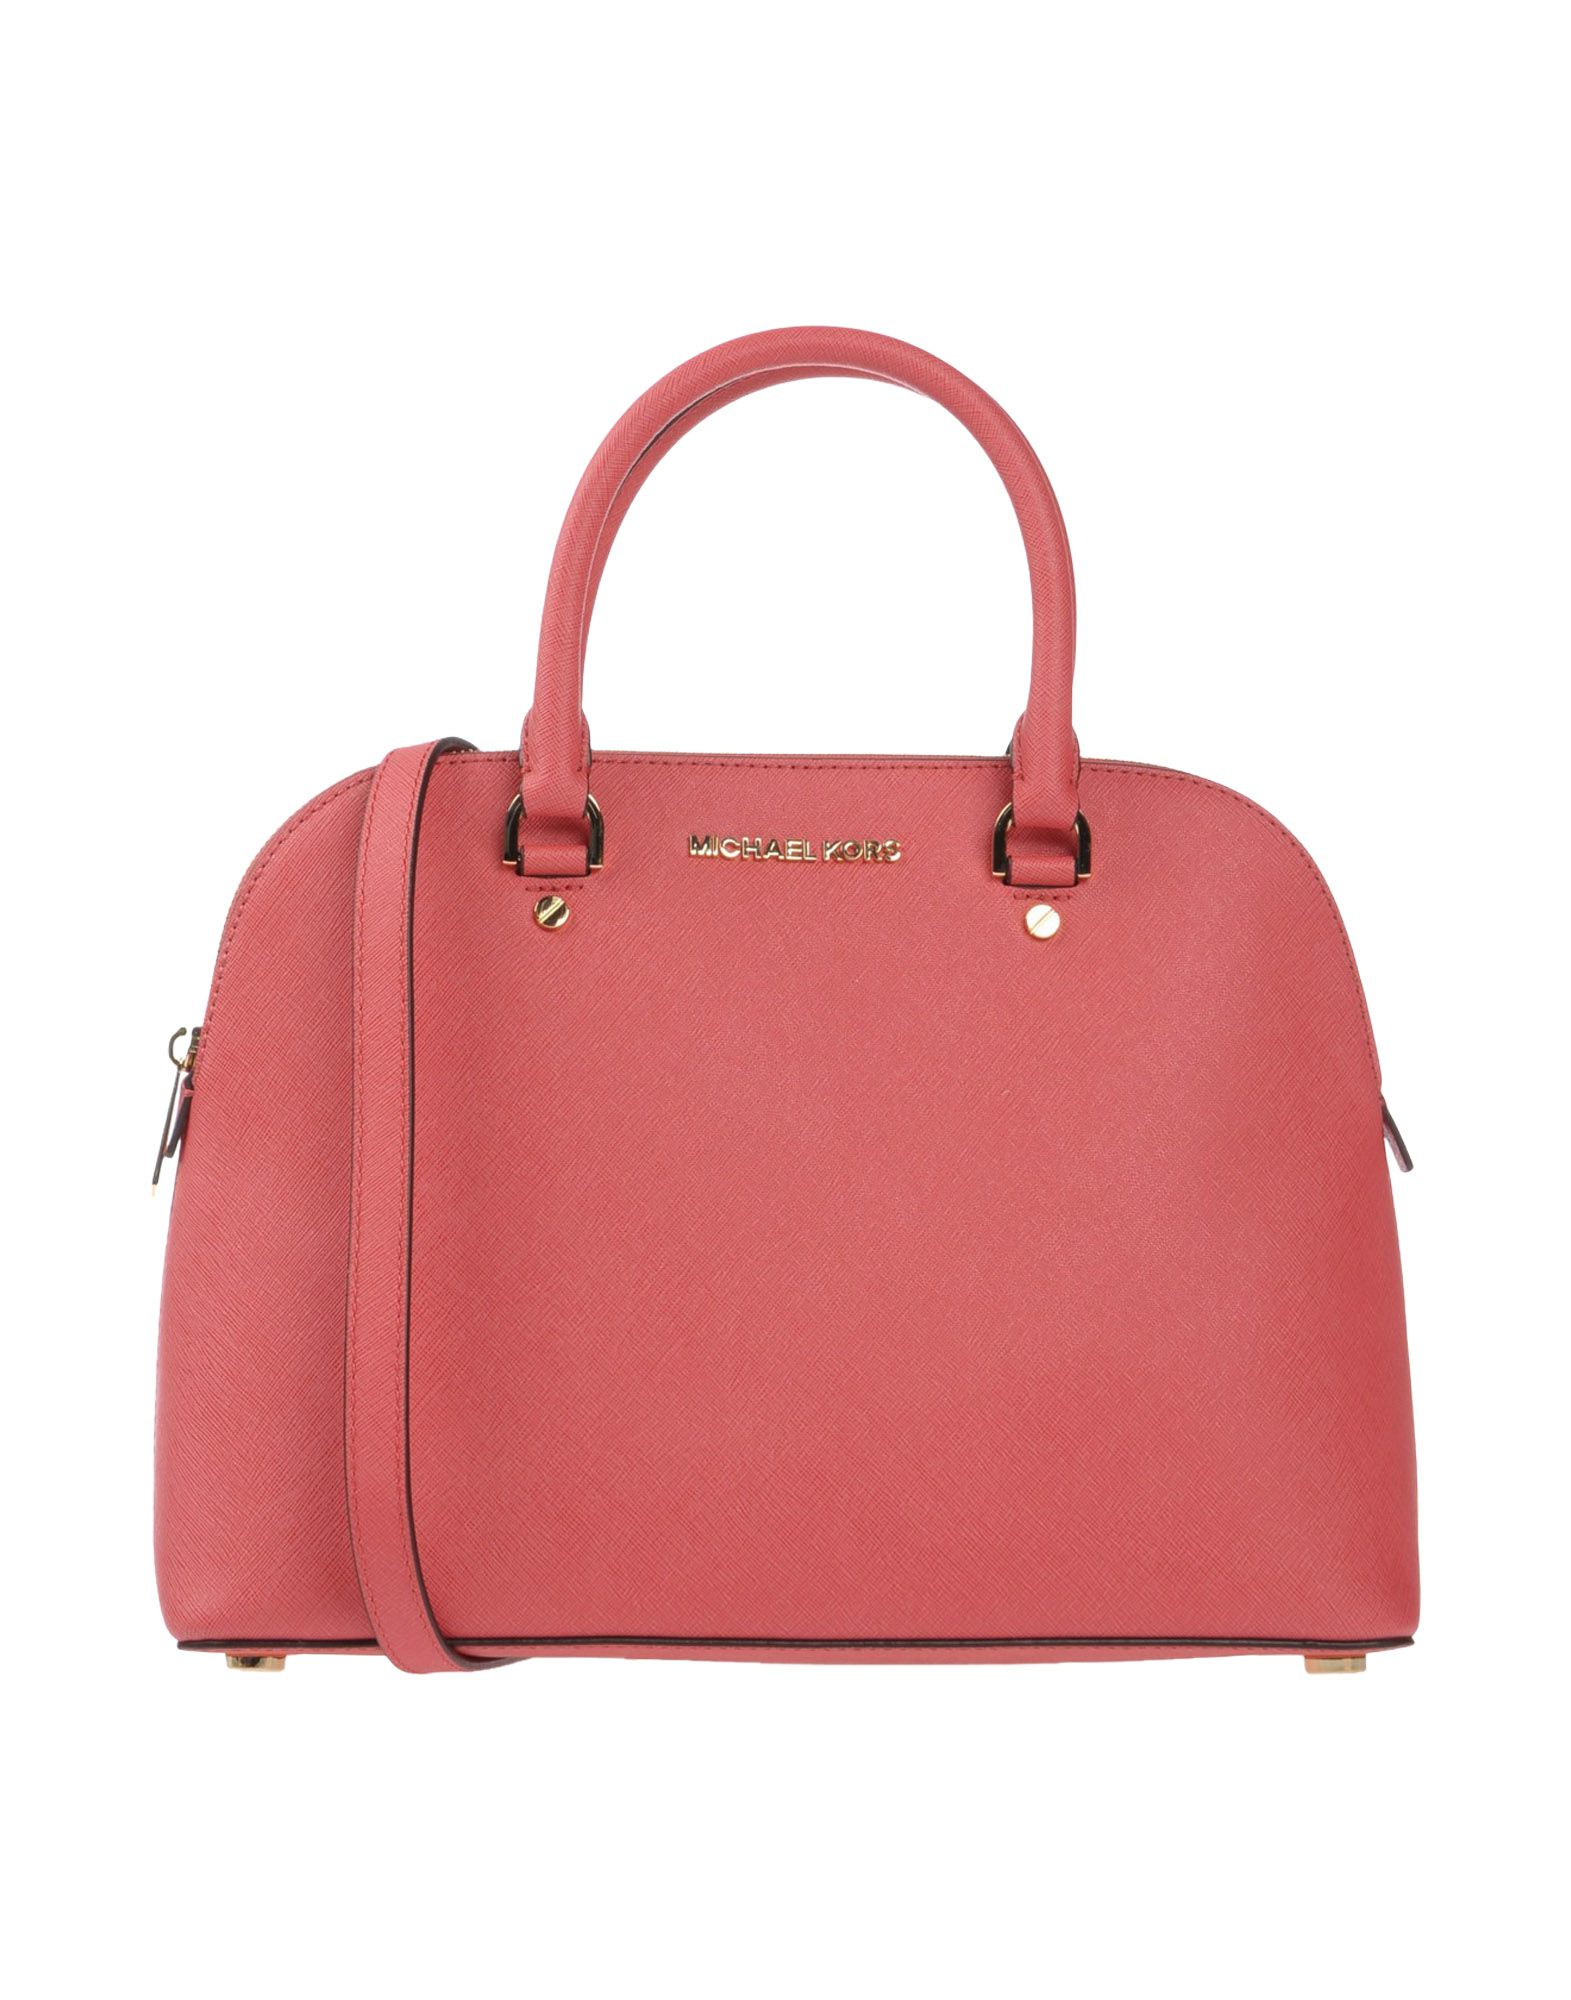 michael michael kors handbag in pink coral lyst. Black Bedroom Furniture Sets. Home Design Ideas